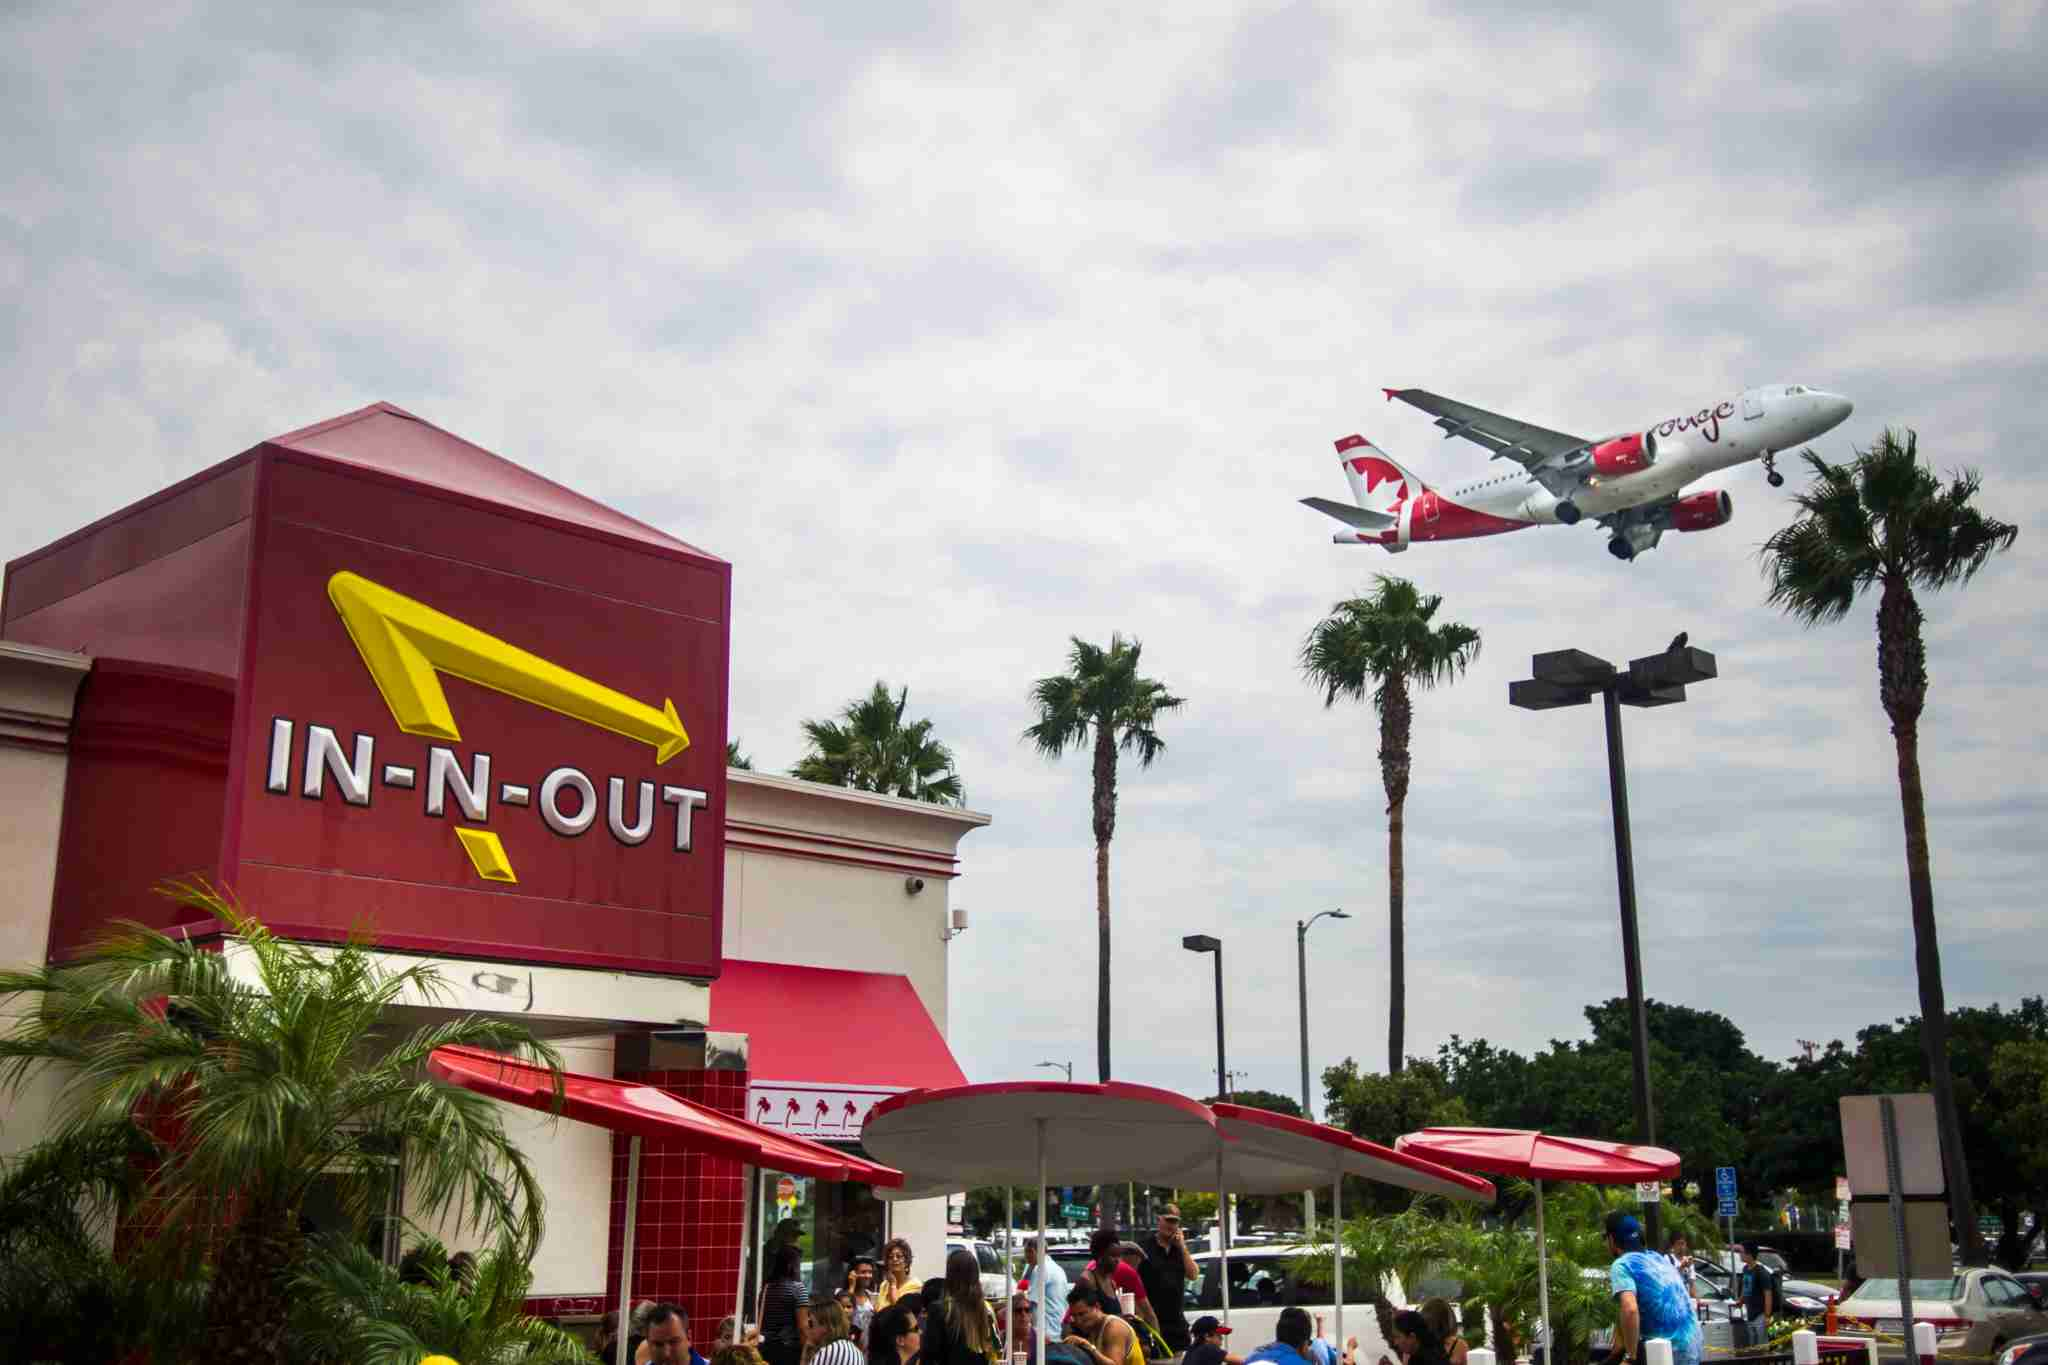 LOS ANGELES, CA - AUGUST 02: An Air Canada Rouge flight is seen above the In-N-Out Burger restaurant Sepulveda Boulevard arriving at Los Angeles International Airport on Saturday, August 02, 2014 in Los Angeles, California. More than 1,500 flights depart and arrive at LAX on a daily basis, ranking it 6th busiest in the world, and 2nd busiest in the United States. (Photo by Kent Nishimura/The Denver Post via Getty Images)